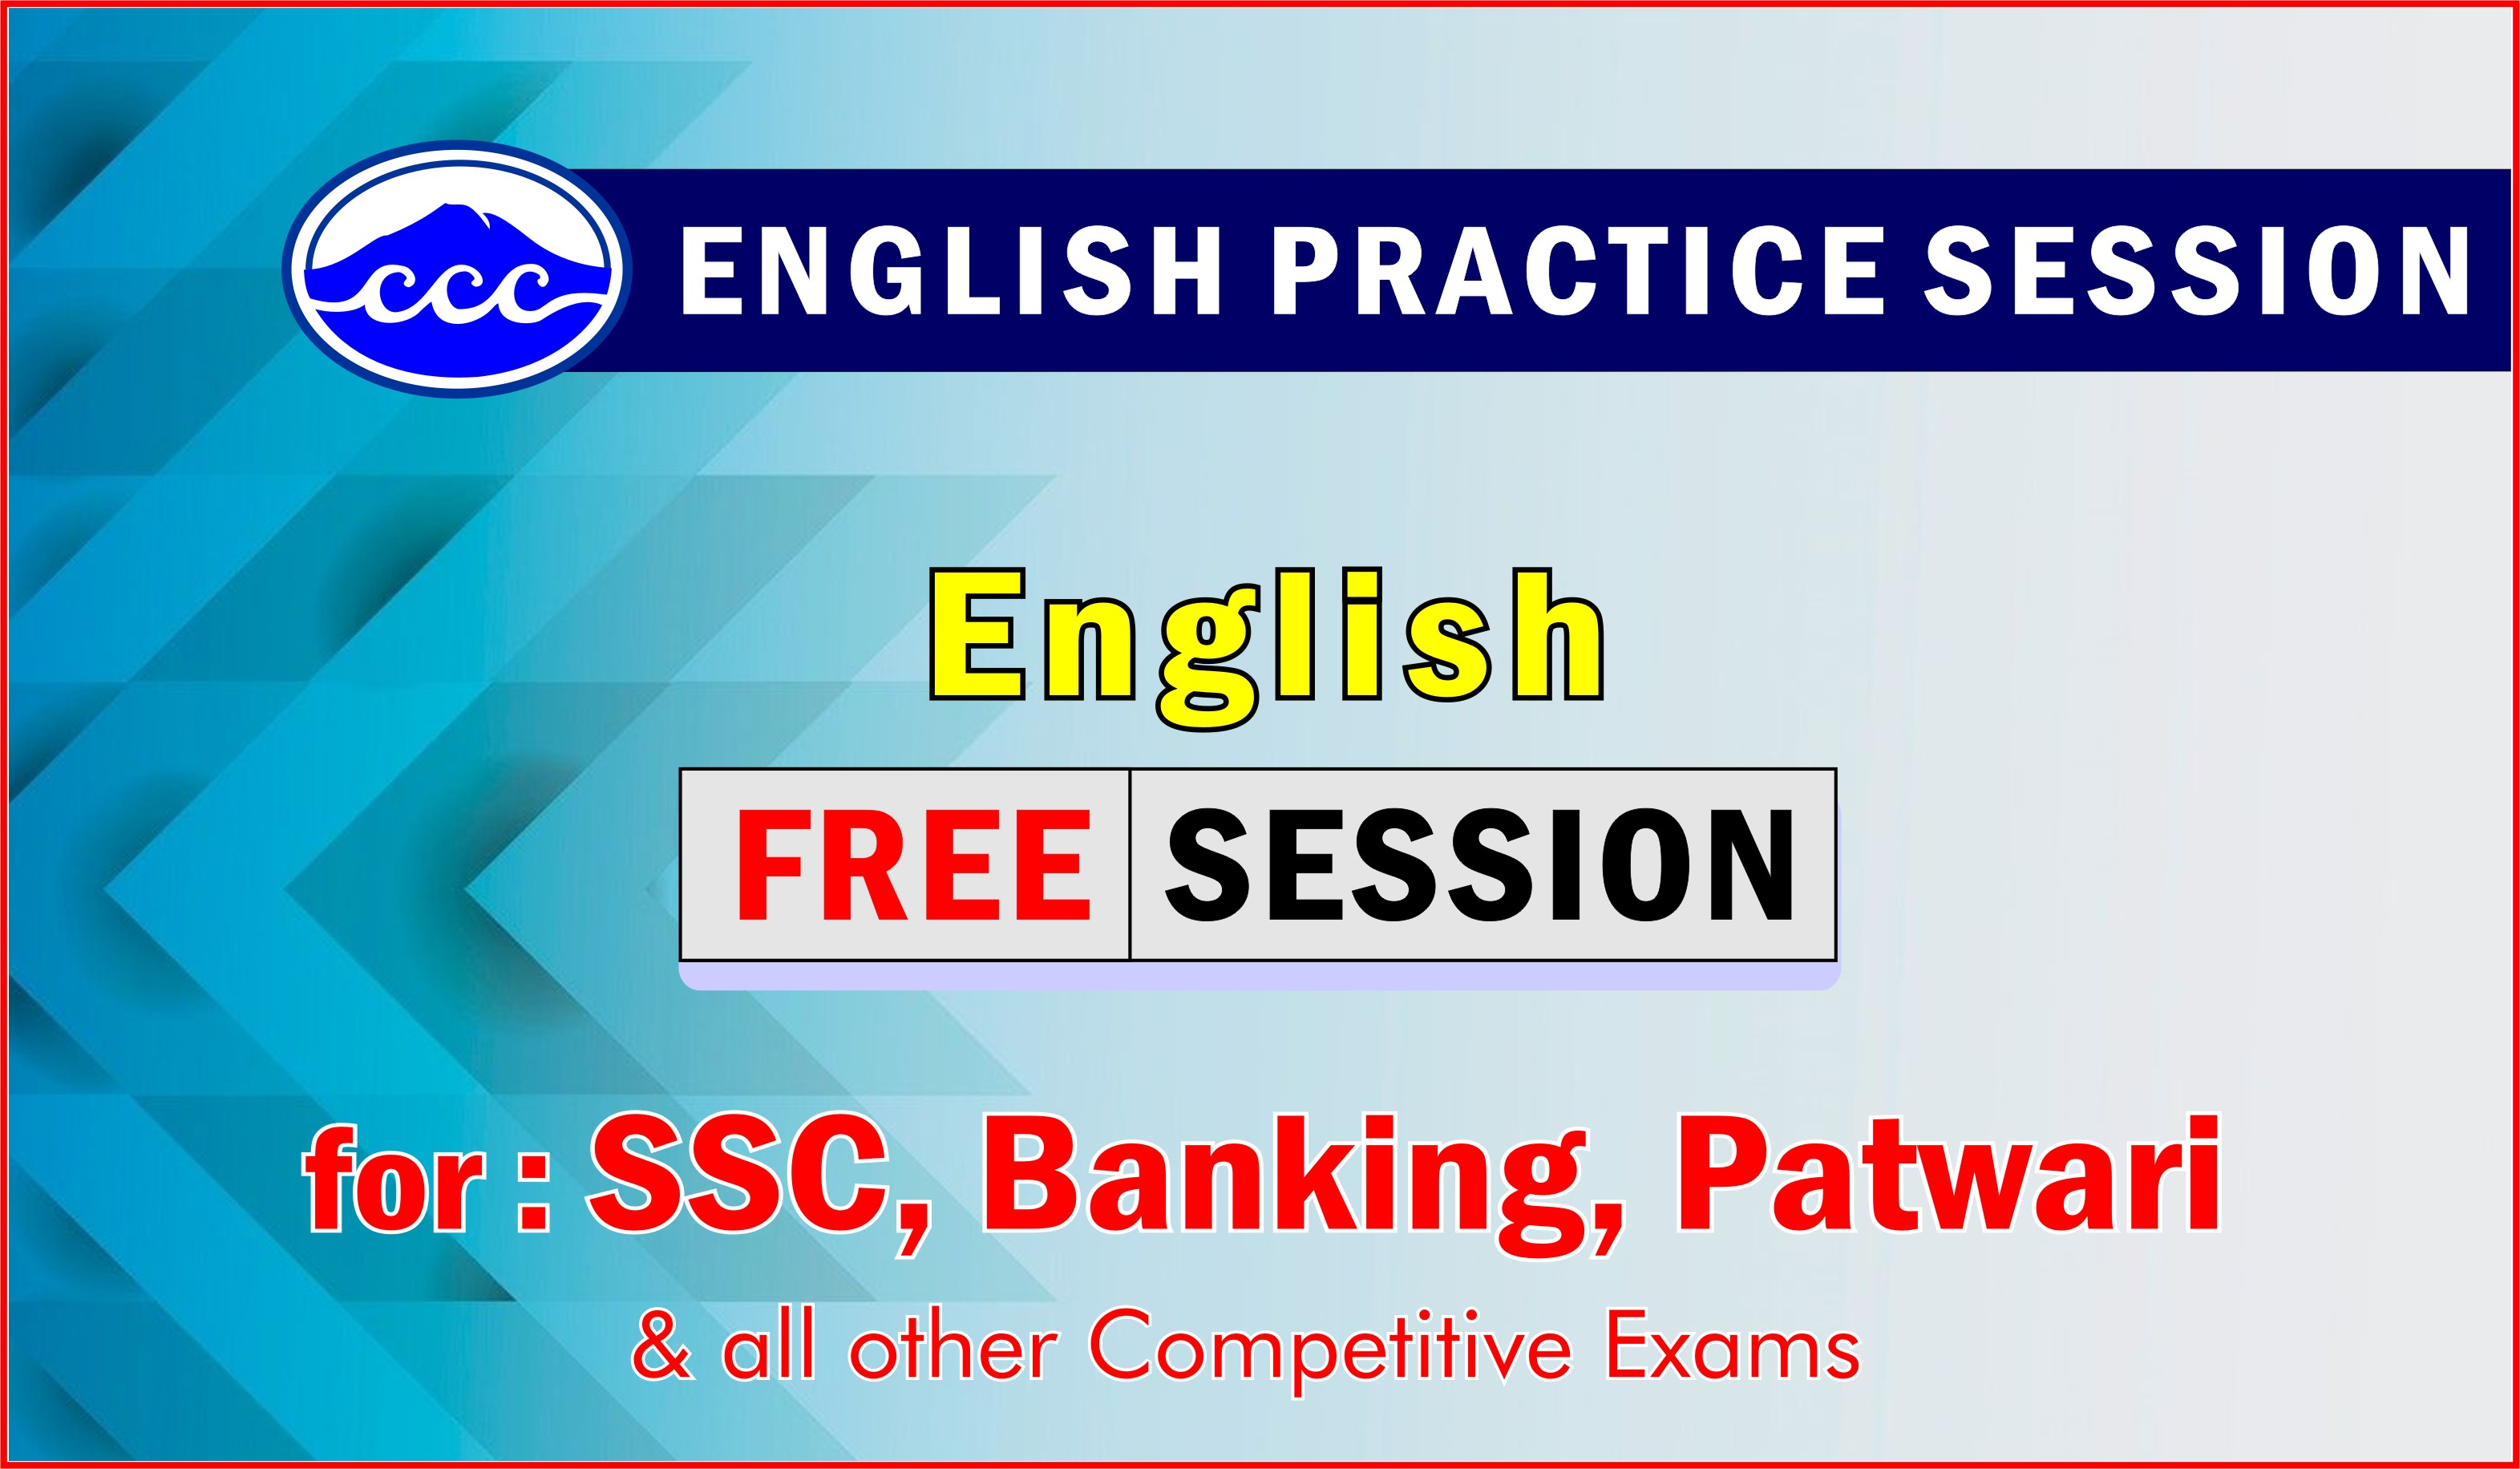 English Practice Session - 7